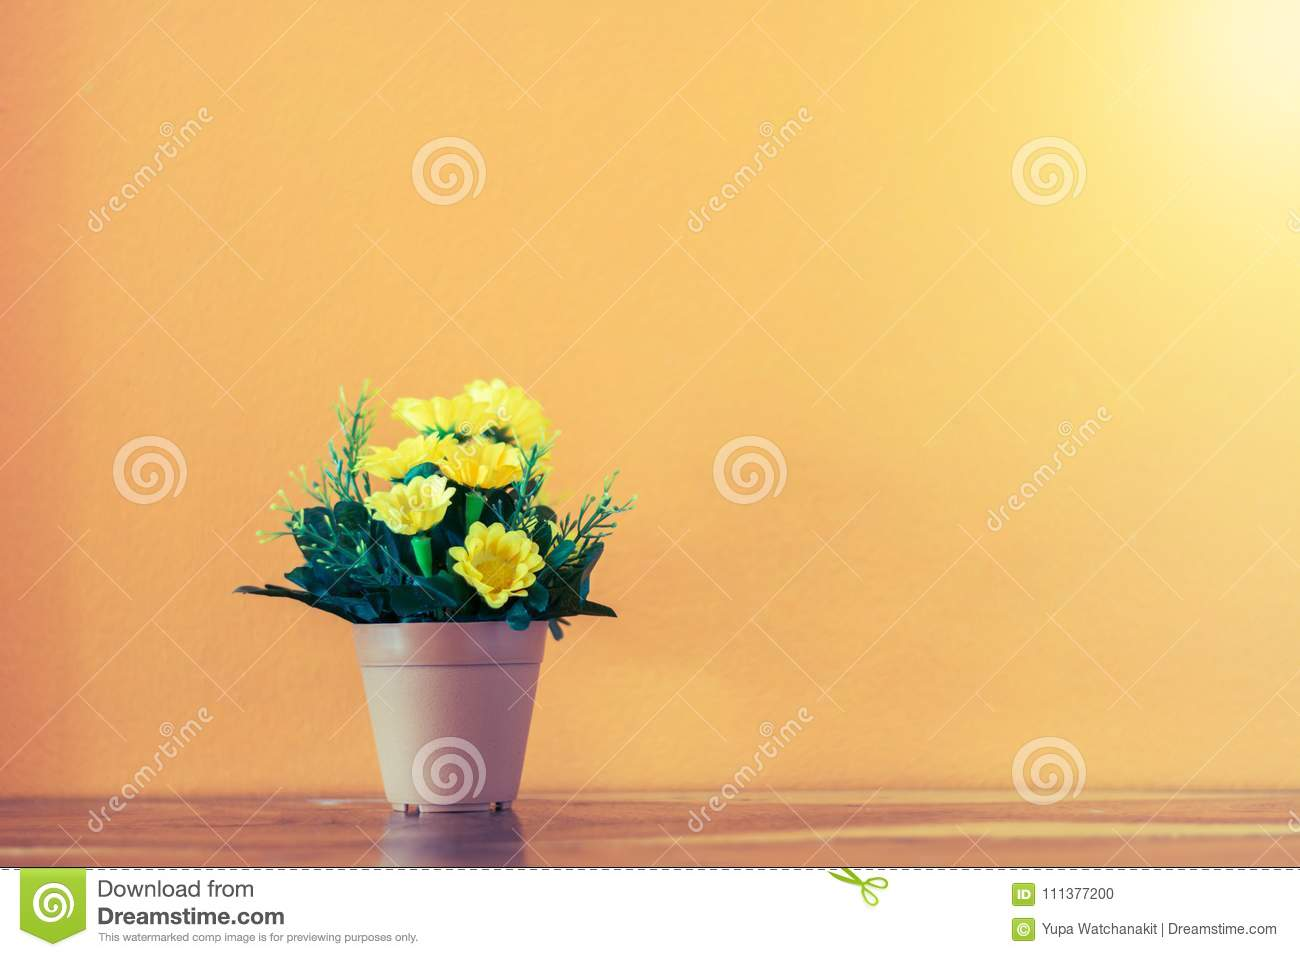 Flower and plant in pot on table